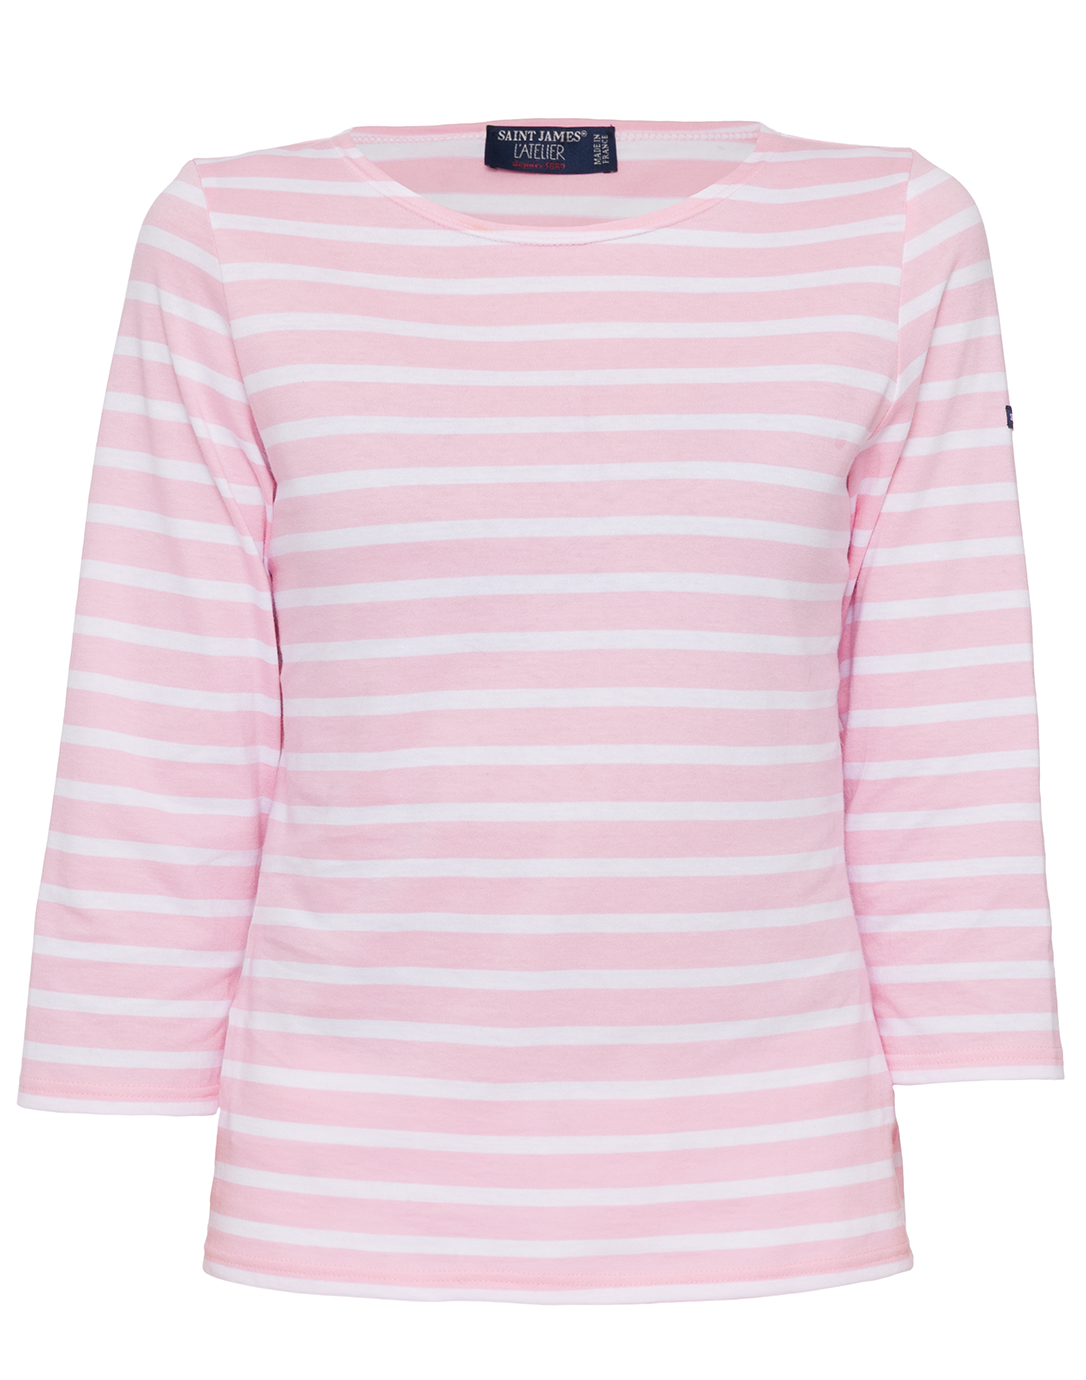 Galathee pink and white striped shirt saint james for St james striped shirt